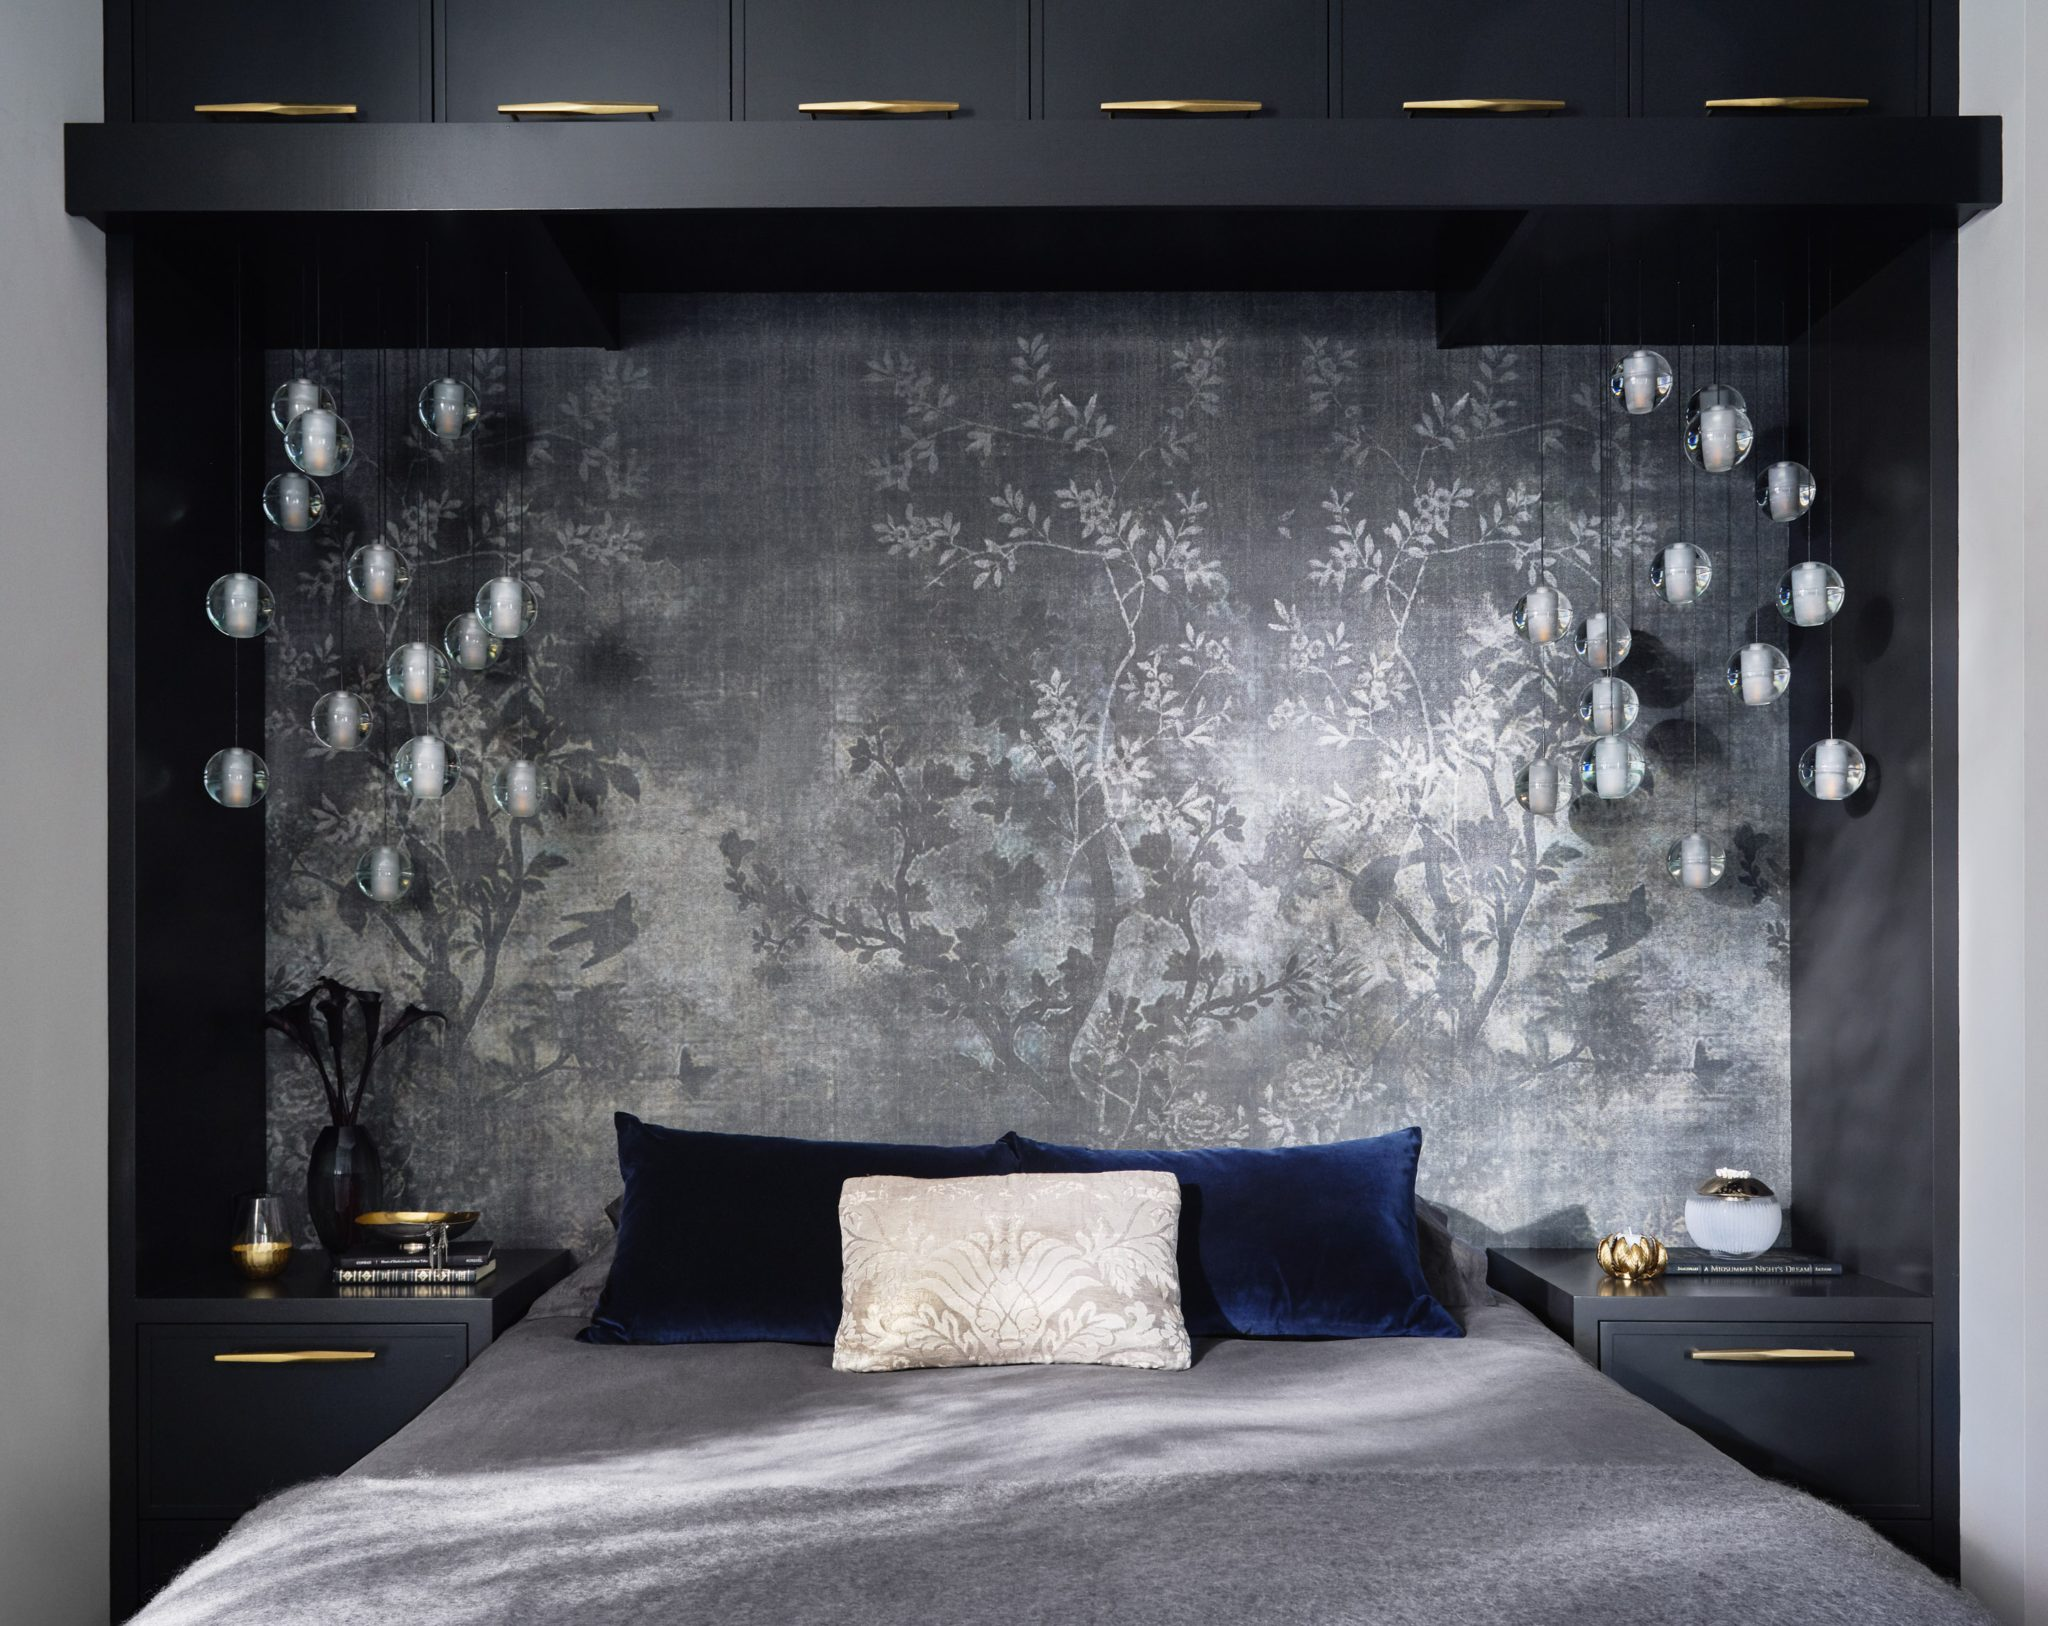 Ashland Midsummers Night Master Bedroom with Wallpaper and Pendant Lights by Suzanne Childress Design